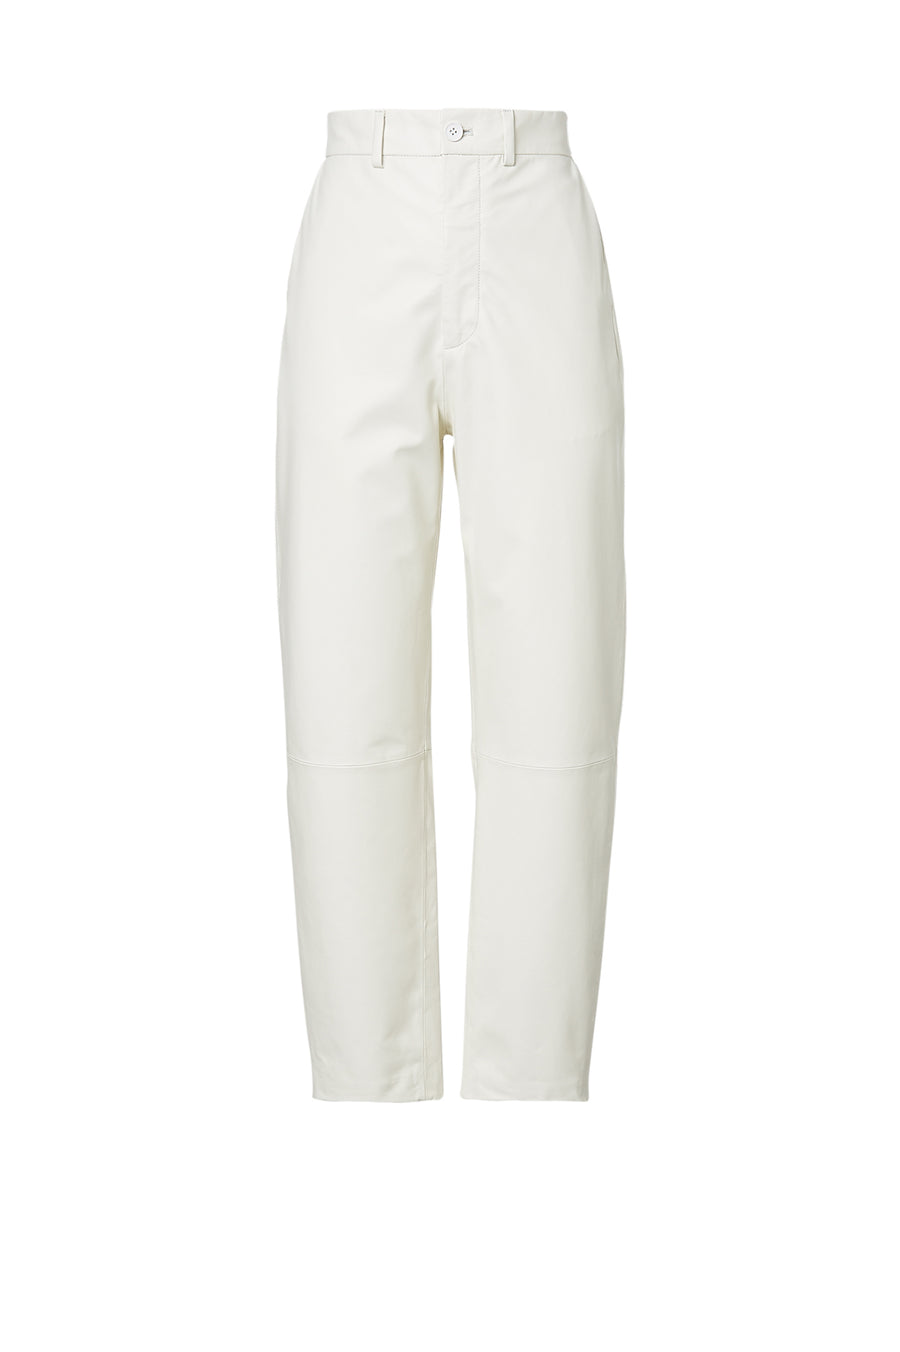 Leather High Waist Trouser White - Scanlan Theodore